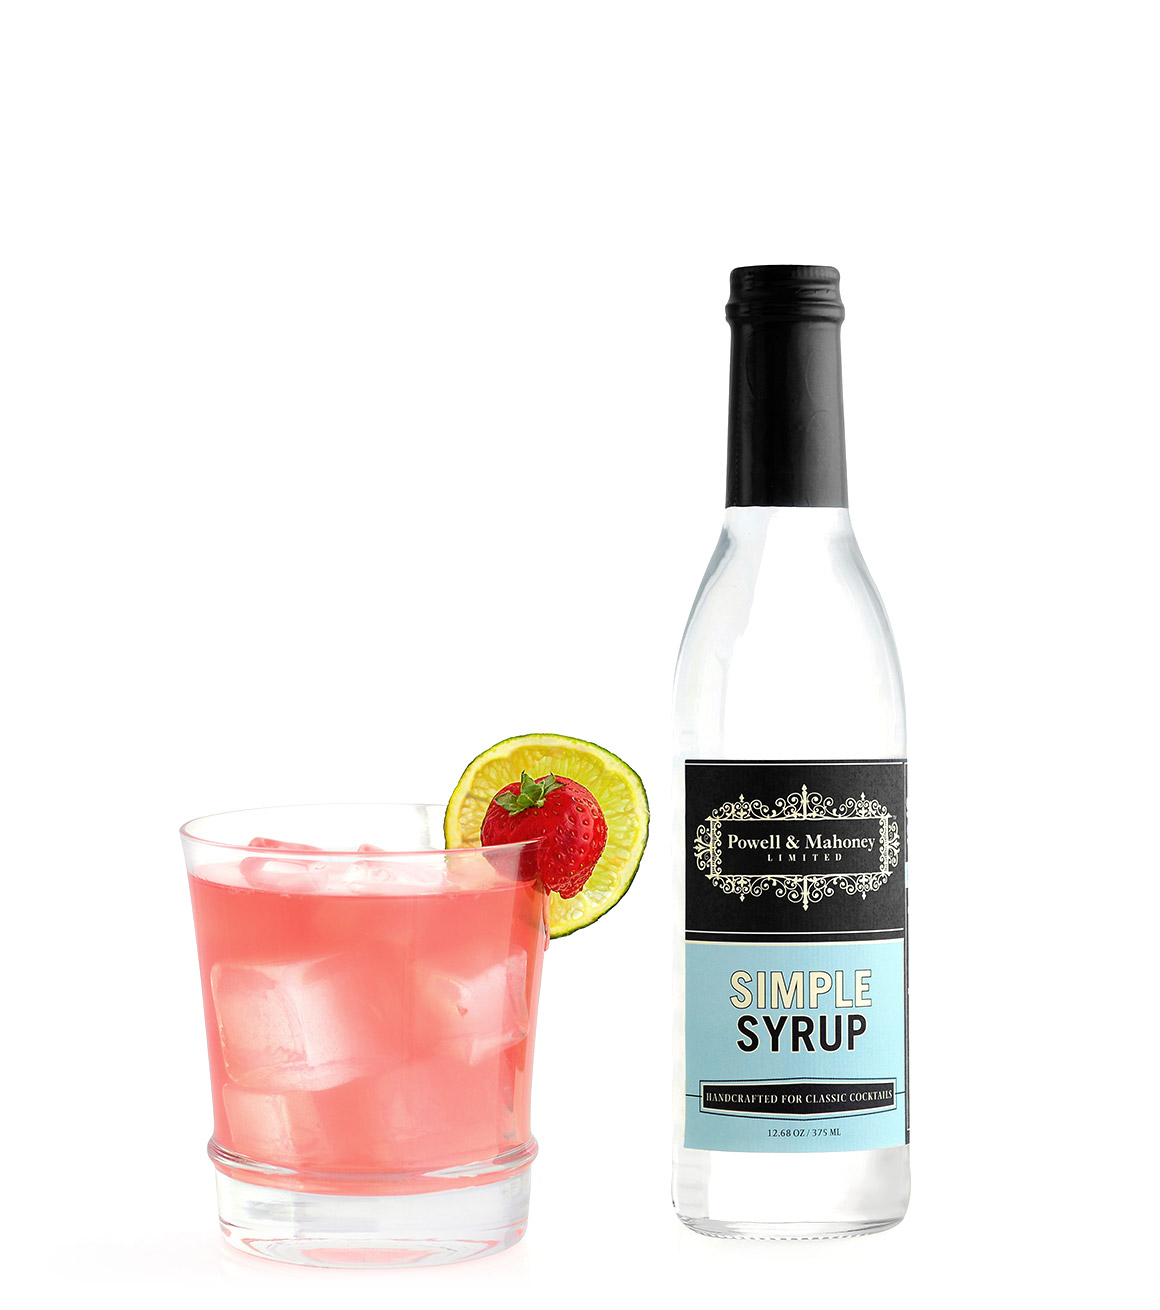 In terms of mixed drinks, shrub is the name of two different, but related, acidulated beverages. One type of shrub is a fruit liqueur that was popular in 17th and 18th century England, typically made with rum or brandy mixed with sugar and the juice or rinds of citrus fruit.